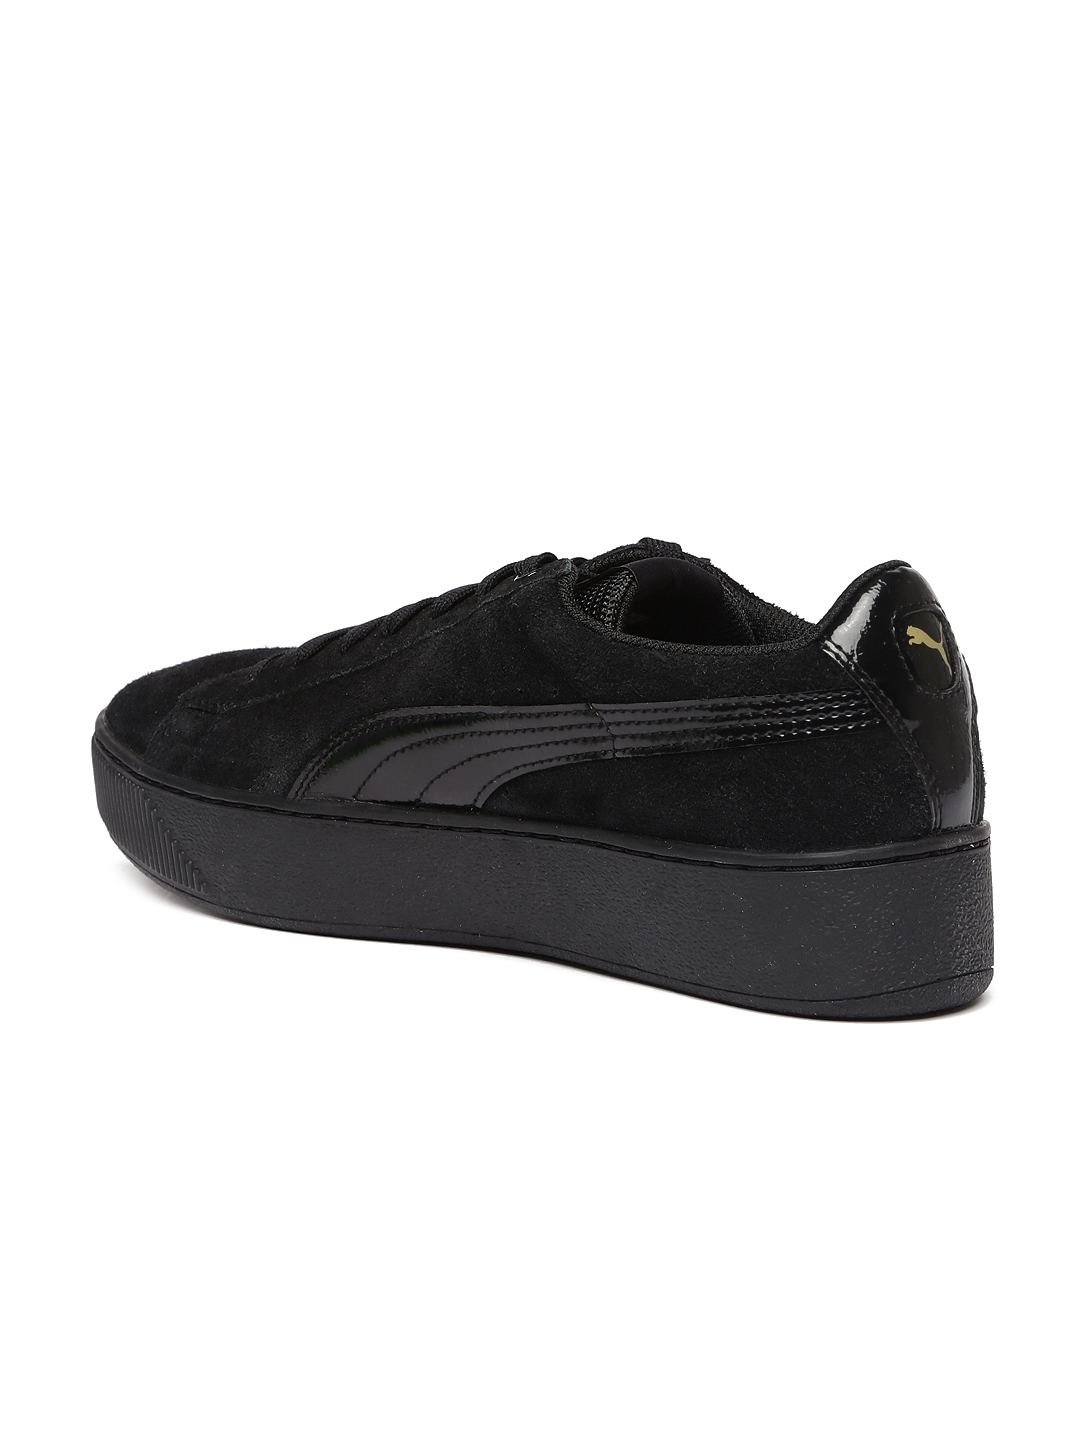 f8b4fb180db5fd Buy Puma Women Black Vikky Platform Sneakers - Casual Shoes for ...